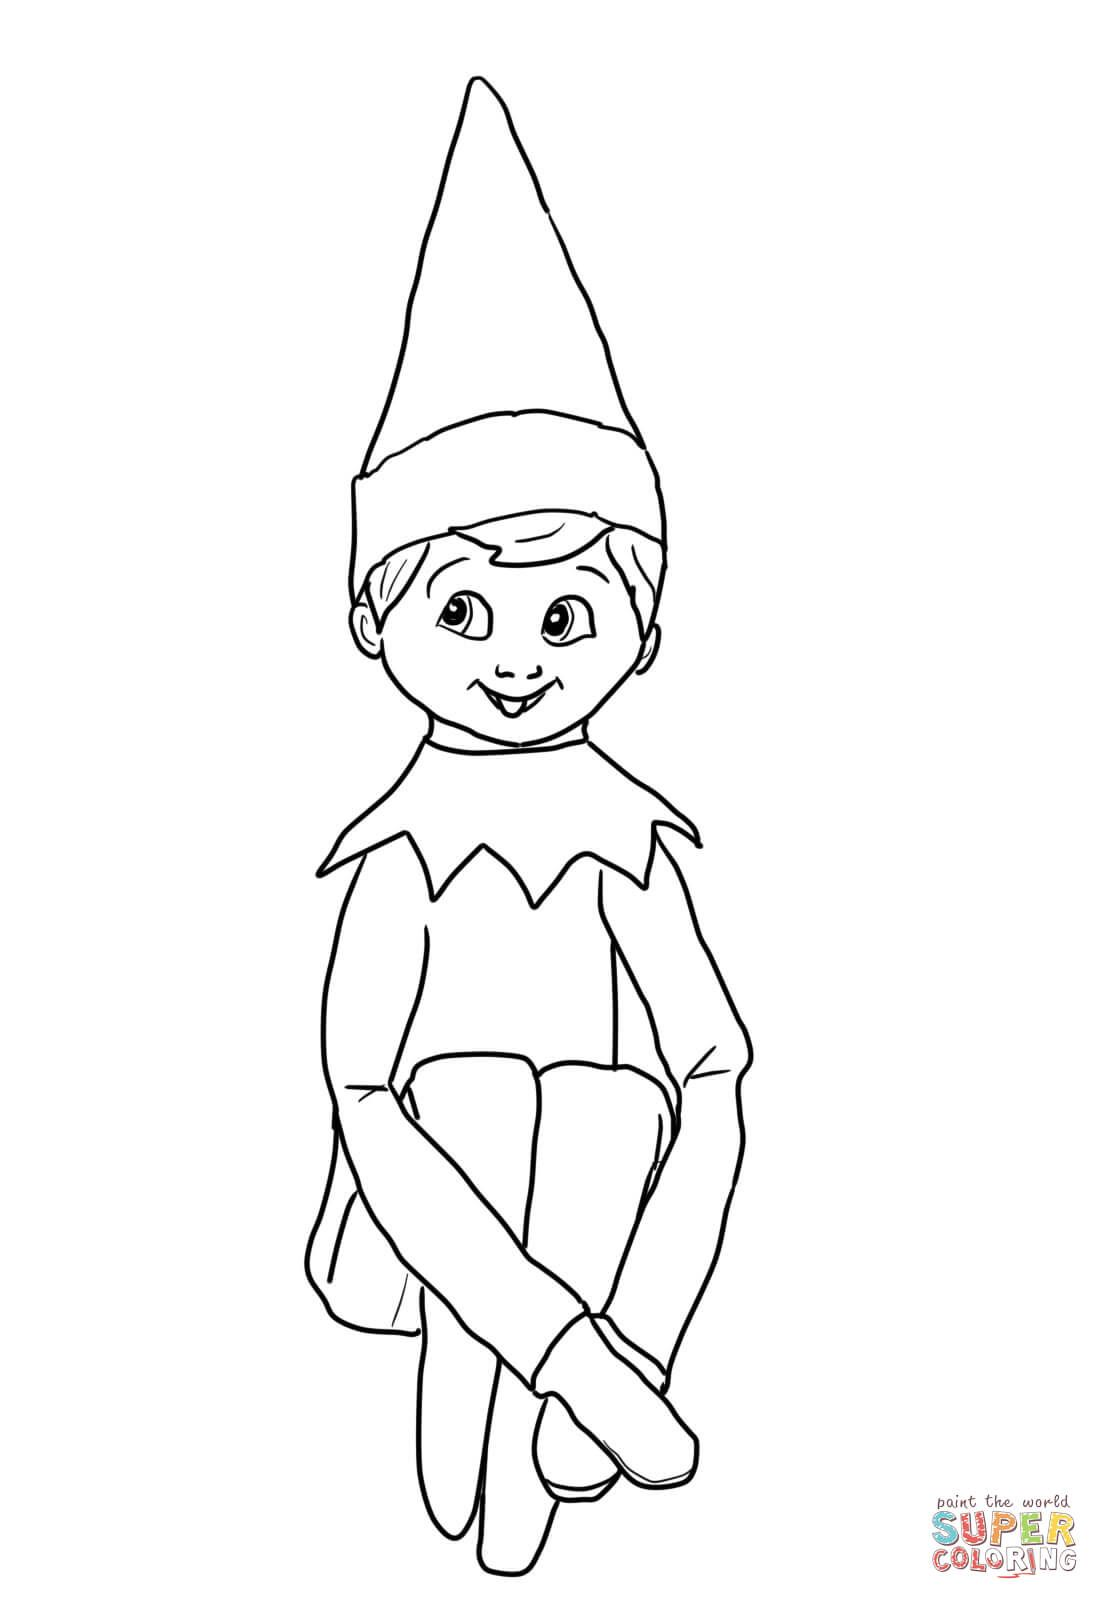 Boy Elf On The Shelf Drawings Google Search Christmas Coloring Sheets Santa Coloring Pages Printable Christmas Coloring Pages